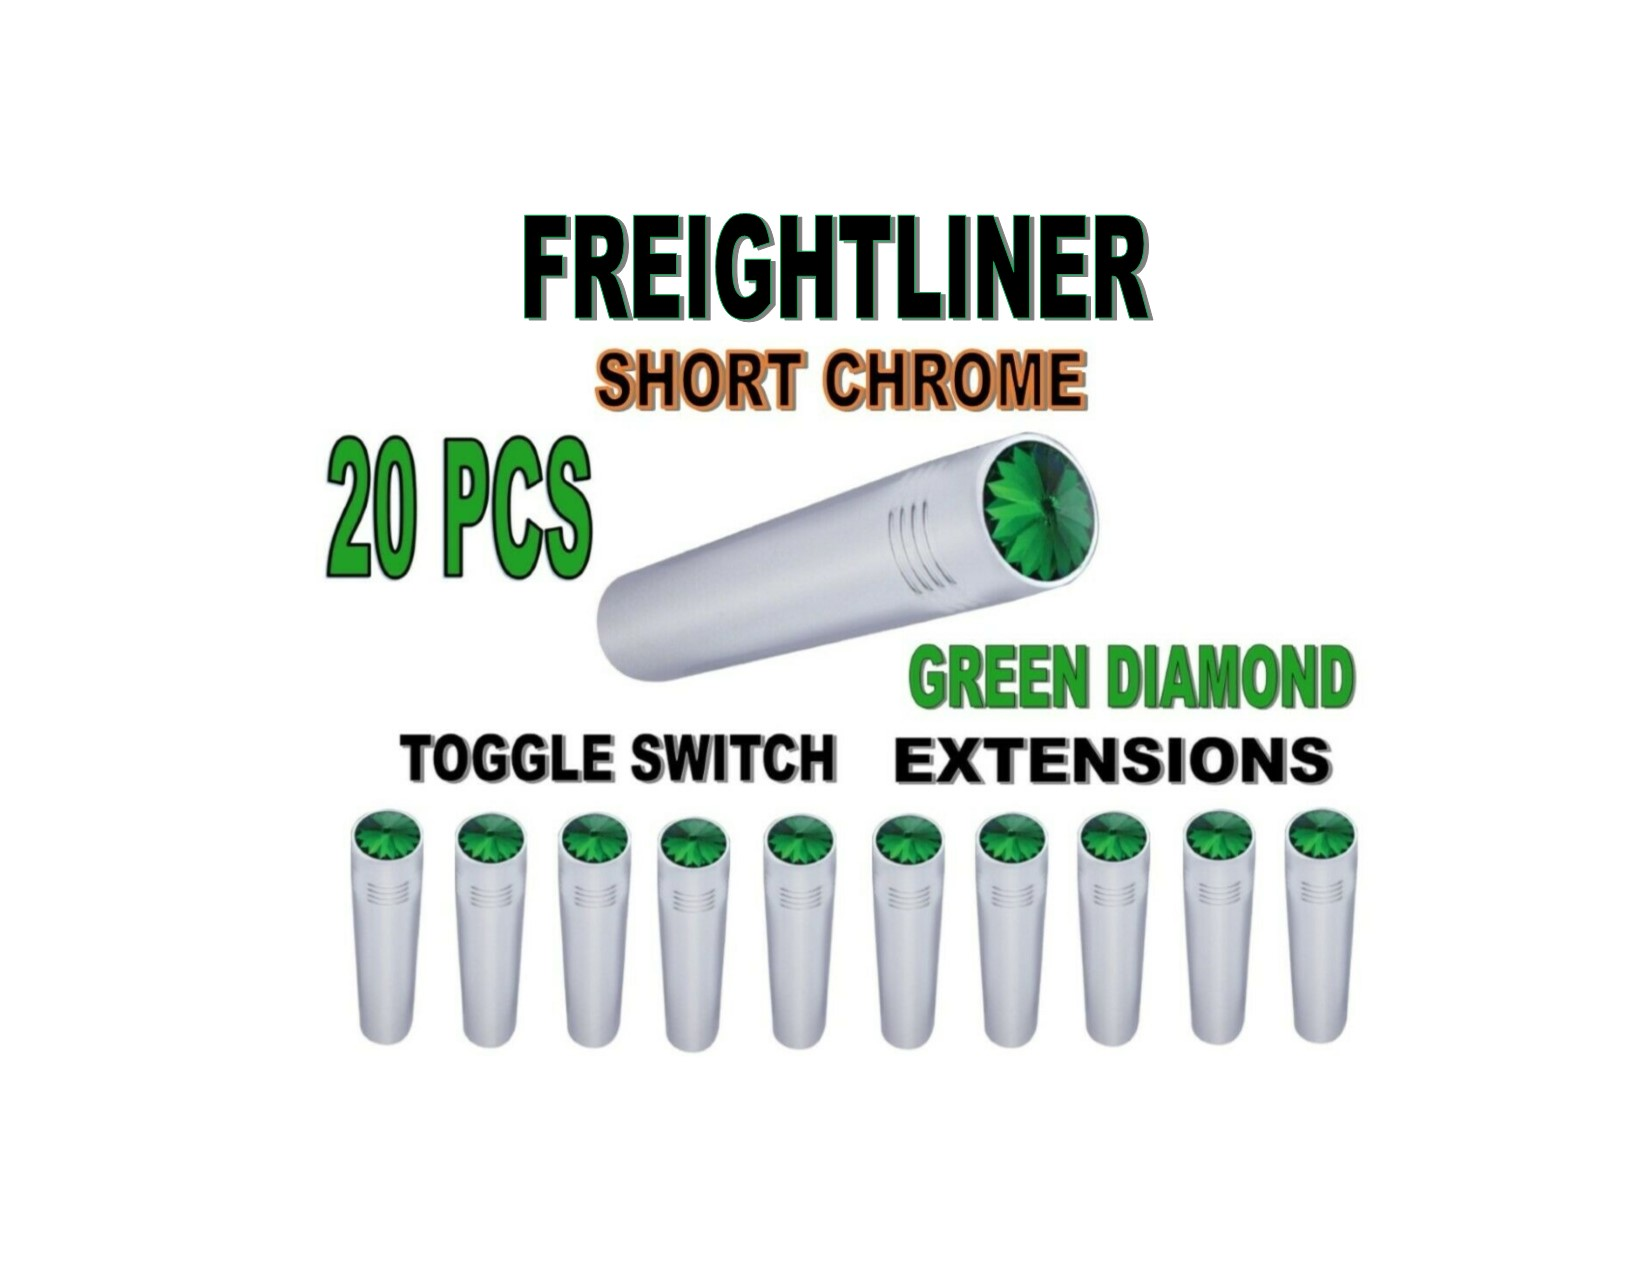 Toggle Switch Ext. Short Chrome - GREEN Diamond (X20) FREIGHTLINER